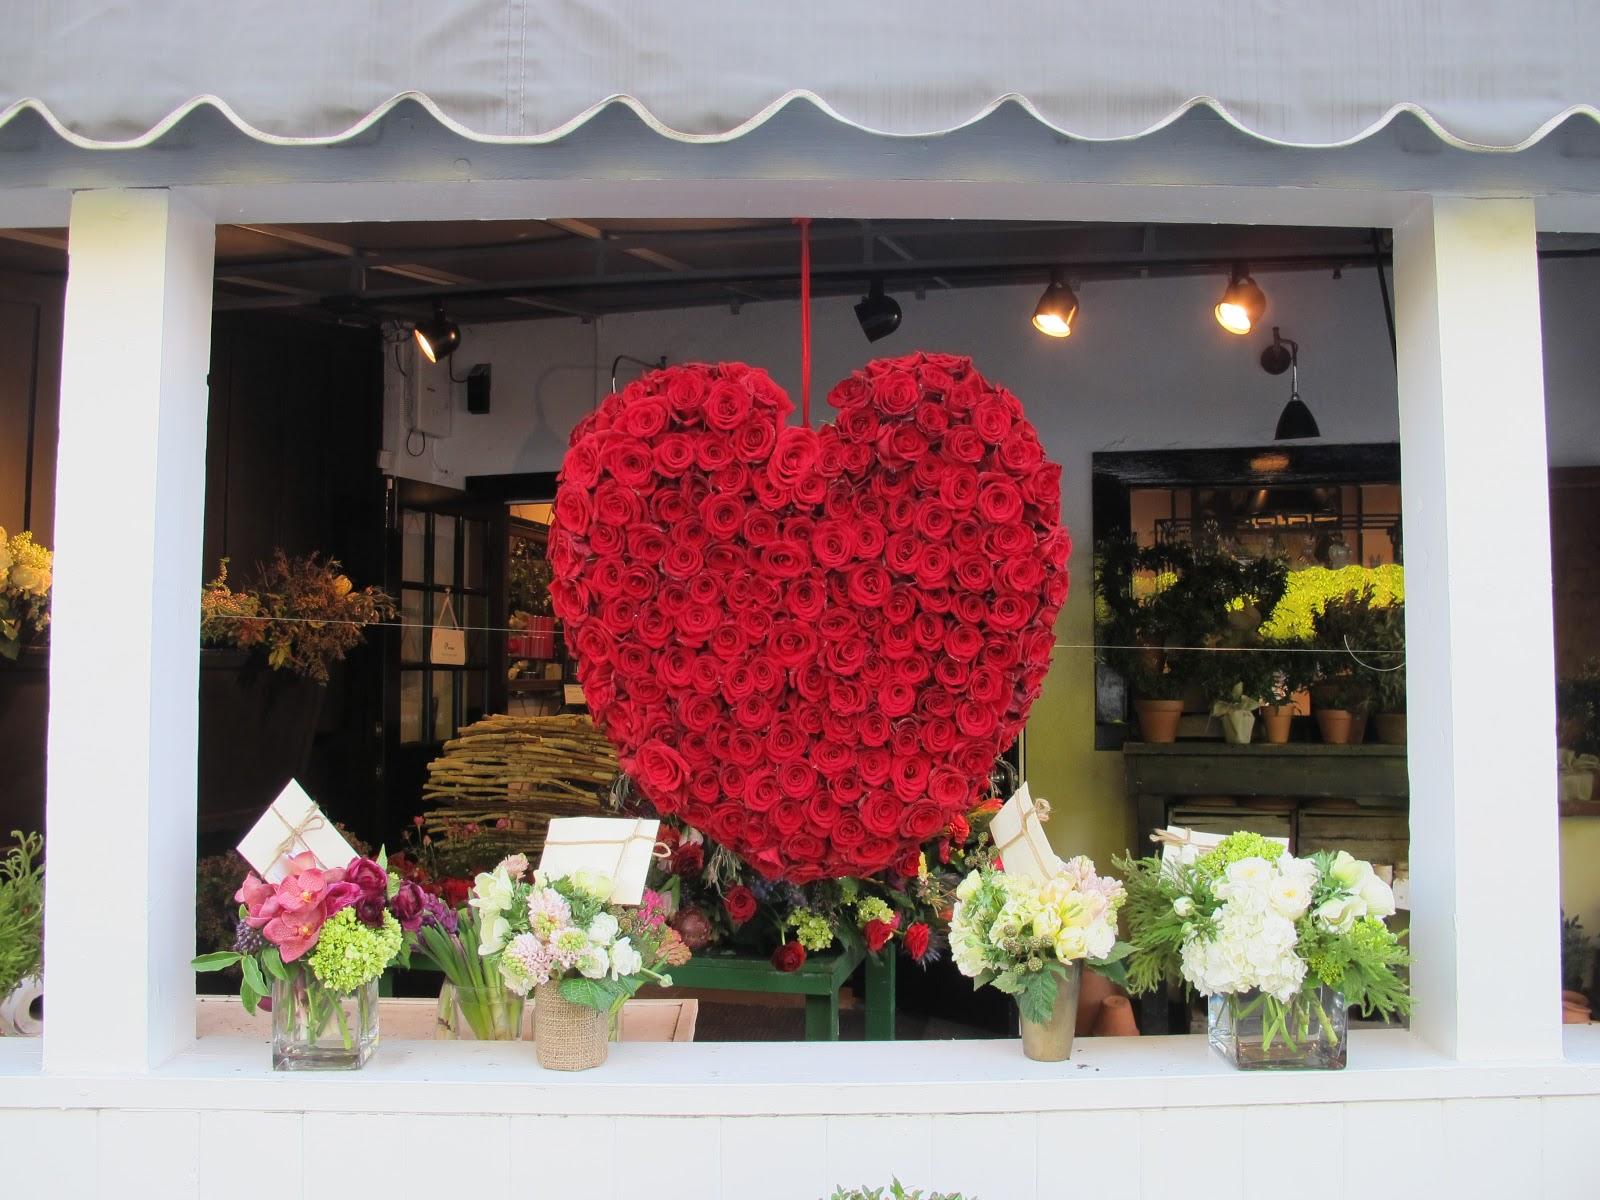 The Florist Shop has created a heart for the window display, made all from red roses, to match with Valentine's Day.